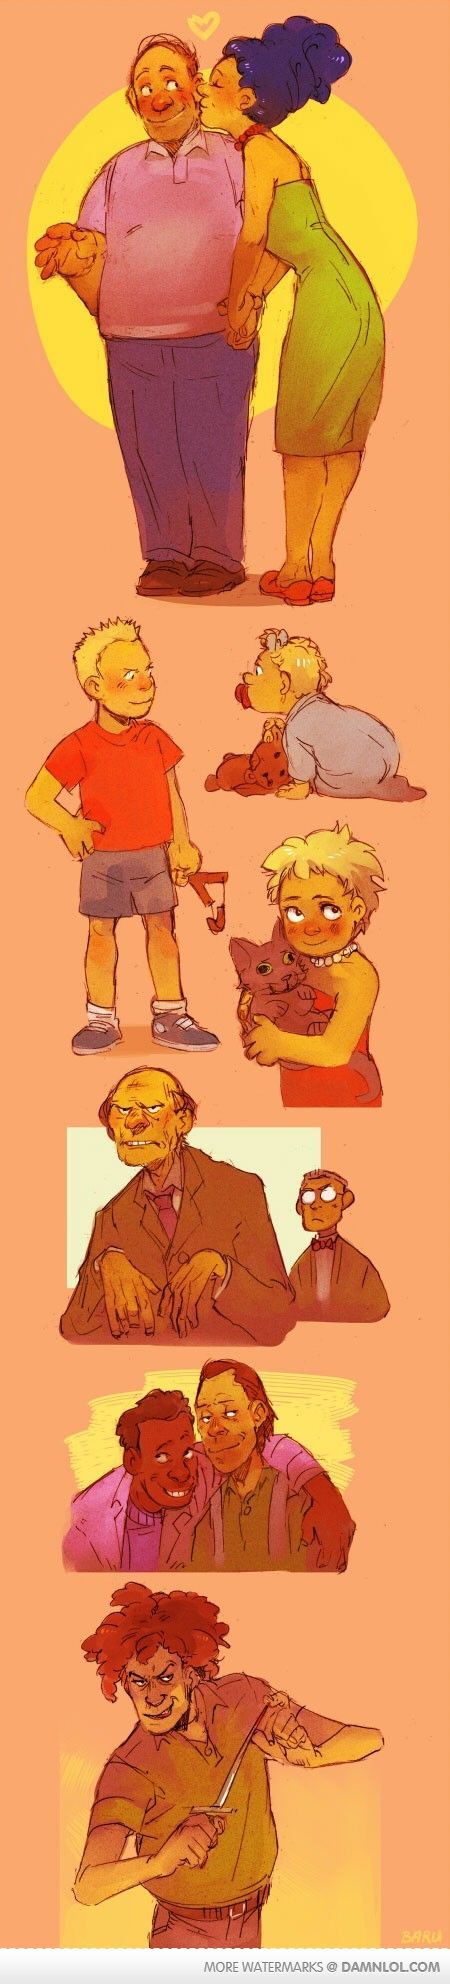 Cartoon Characters 3 Fingers : Best images about the simpsons on pinterest five